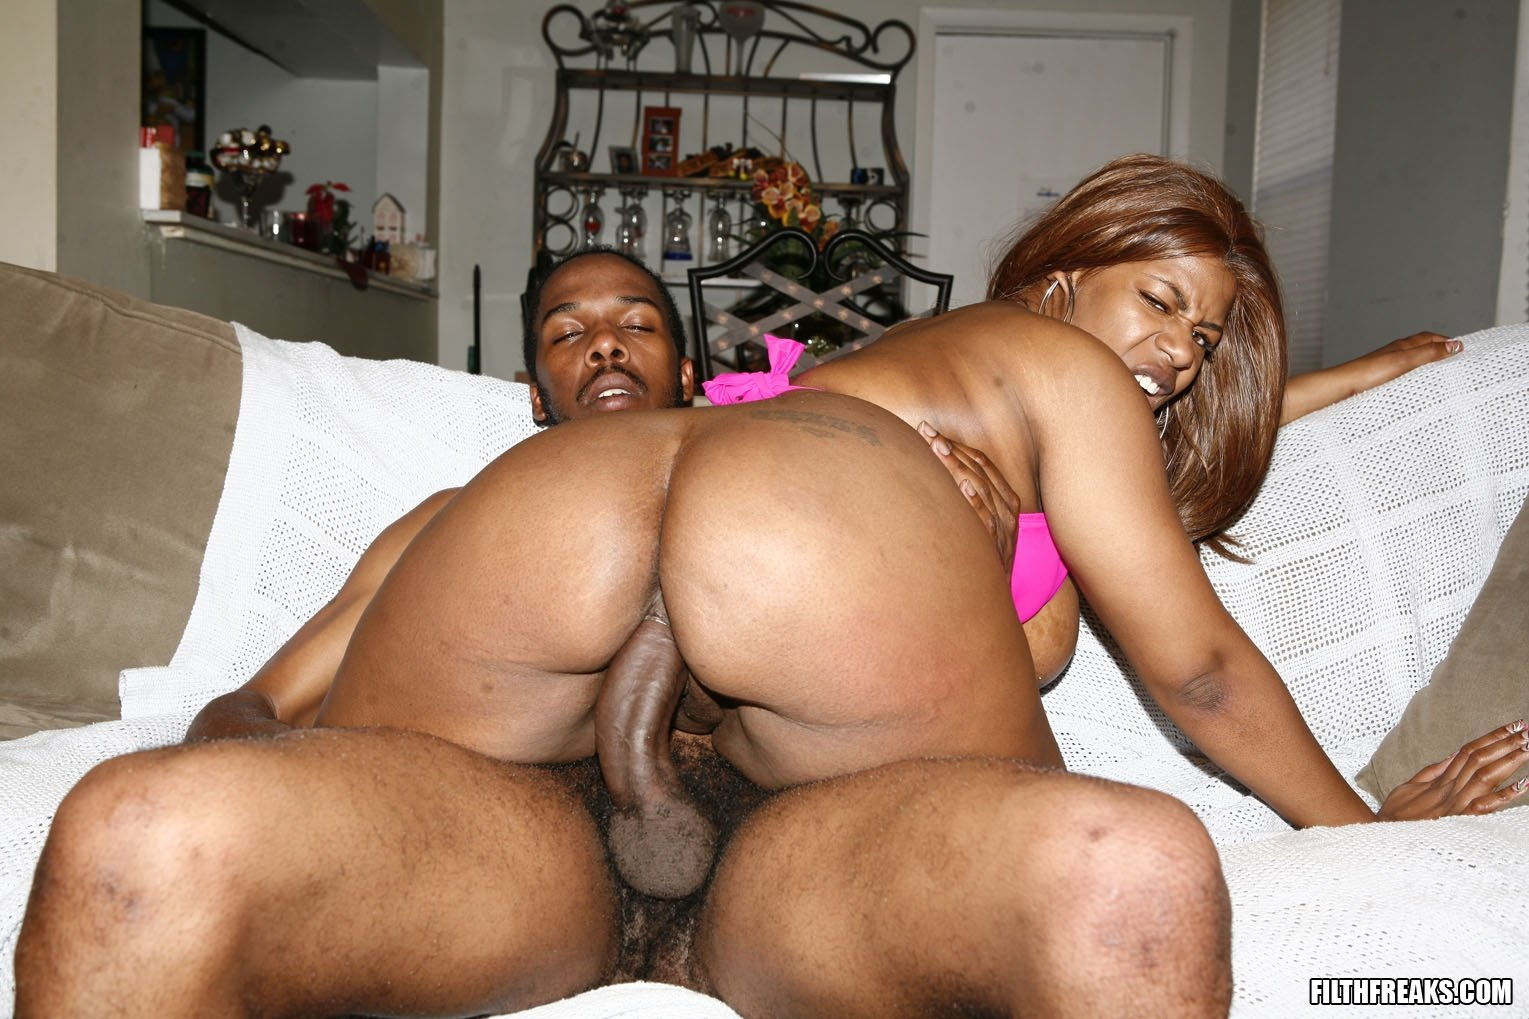 Molly jane dad family